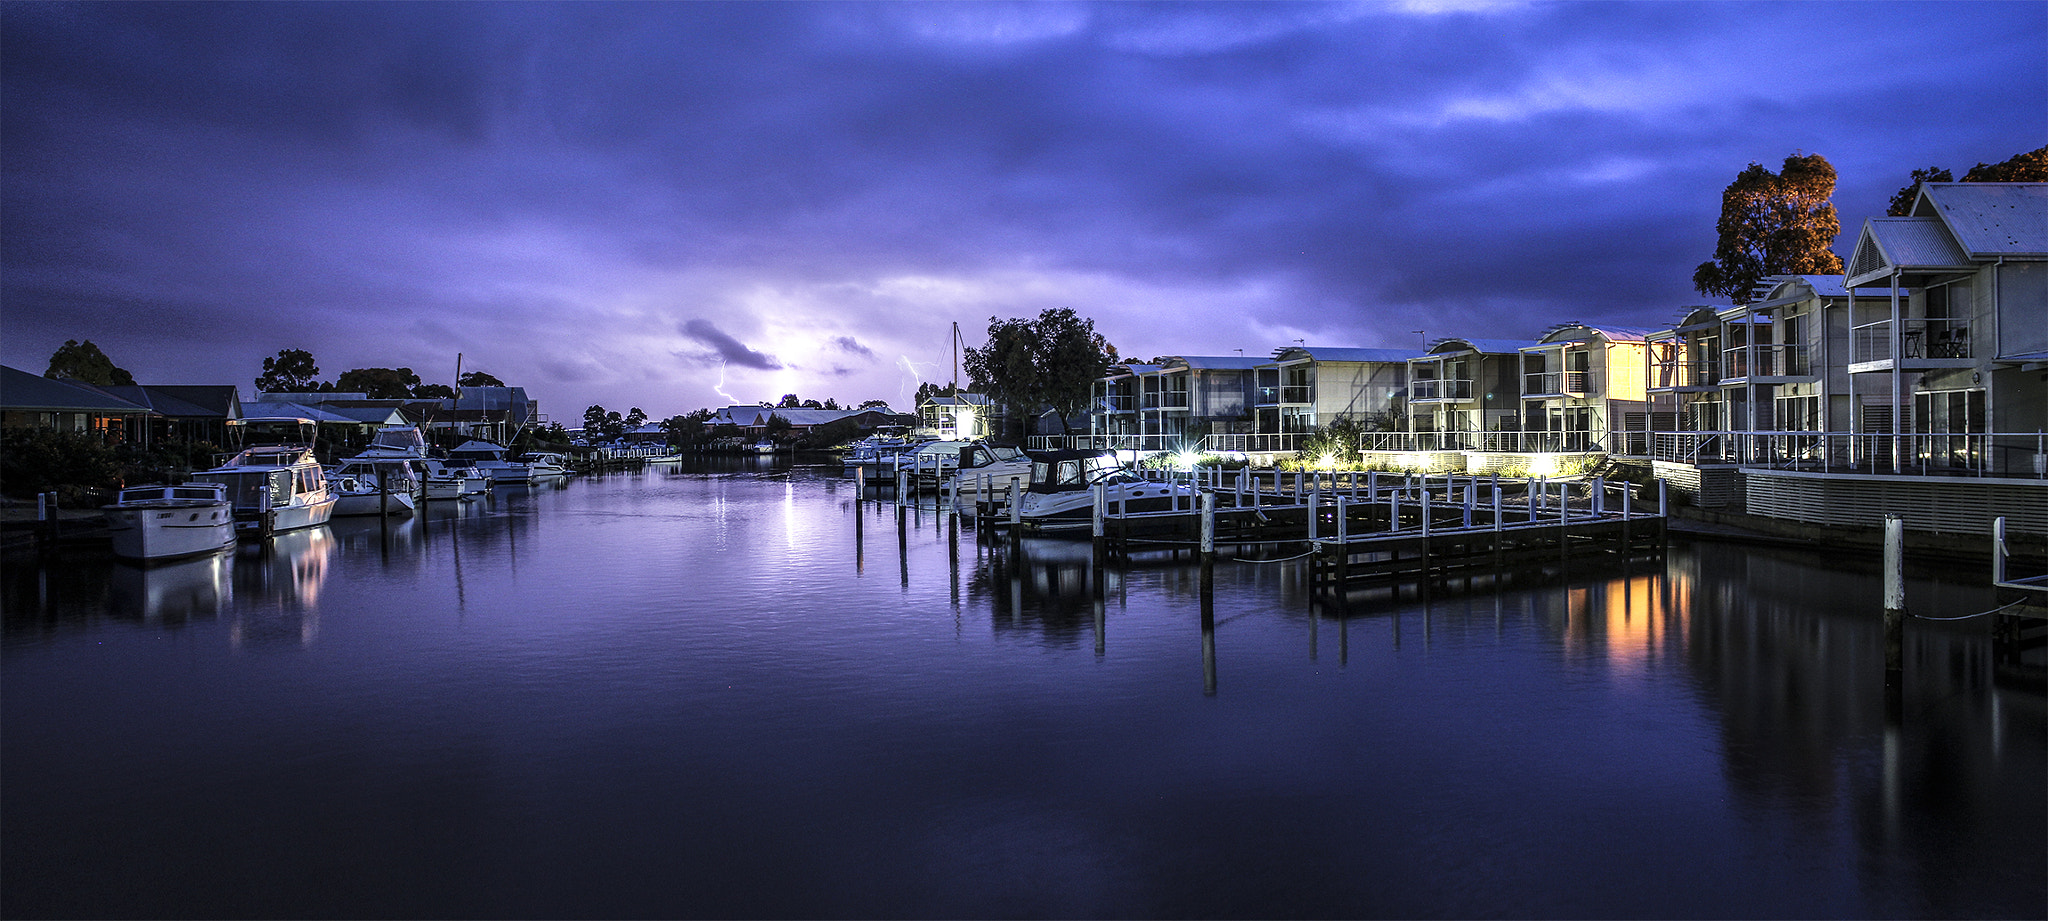 Photograph Lightning over Paynesville Canals by Ashley Davies on 500px